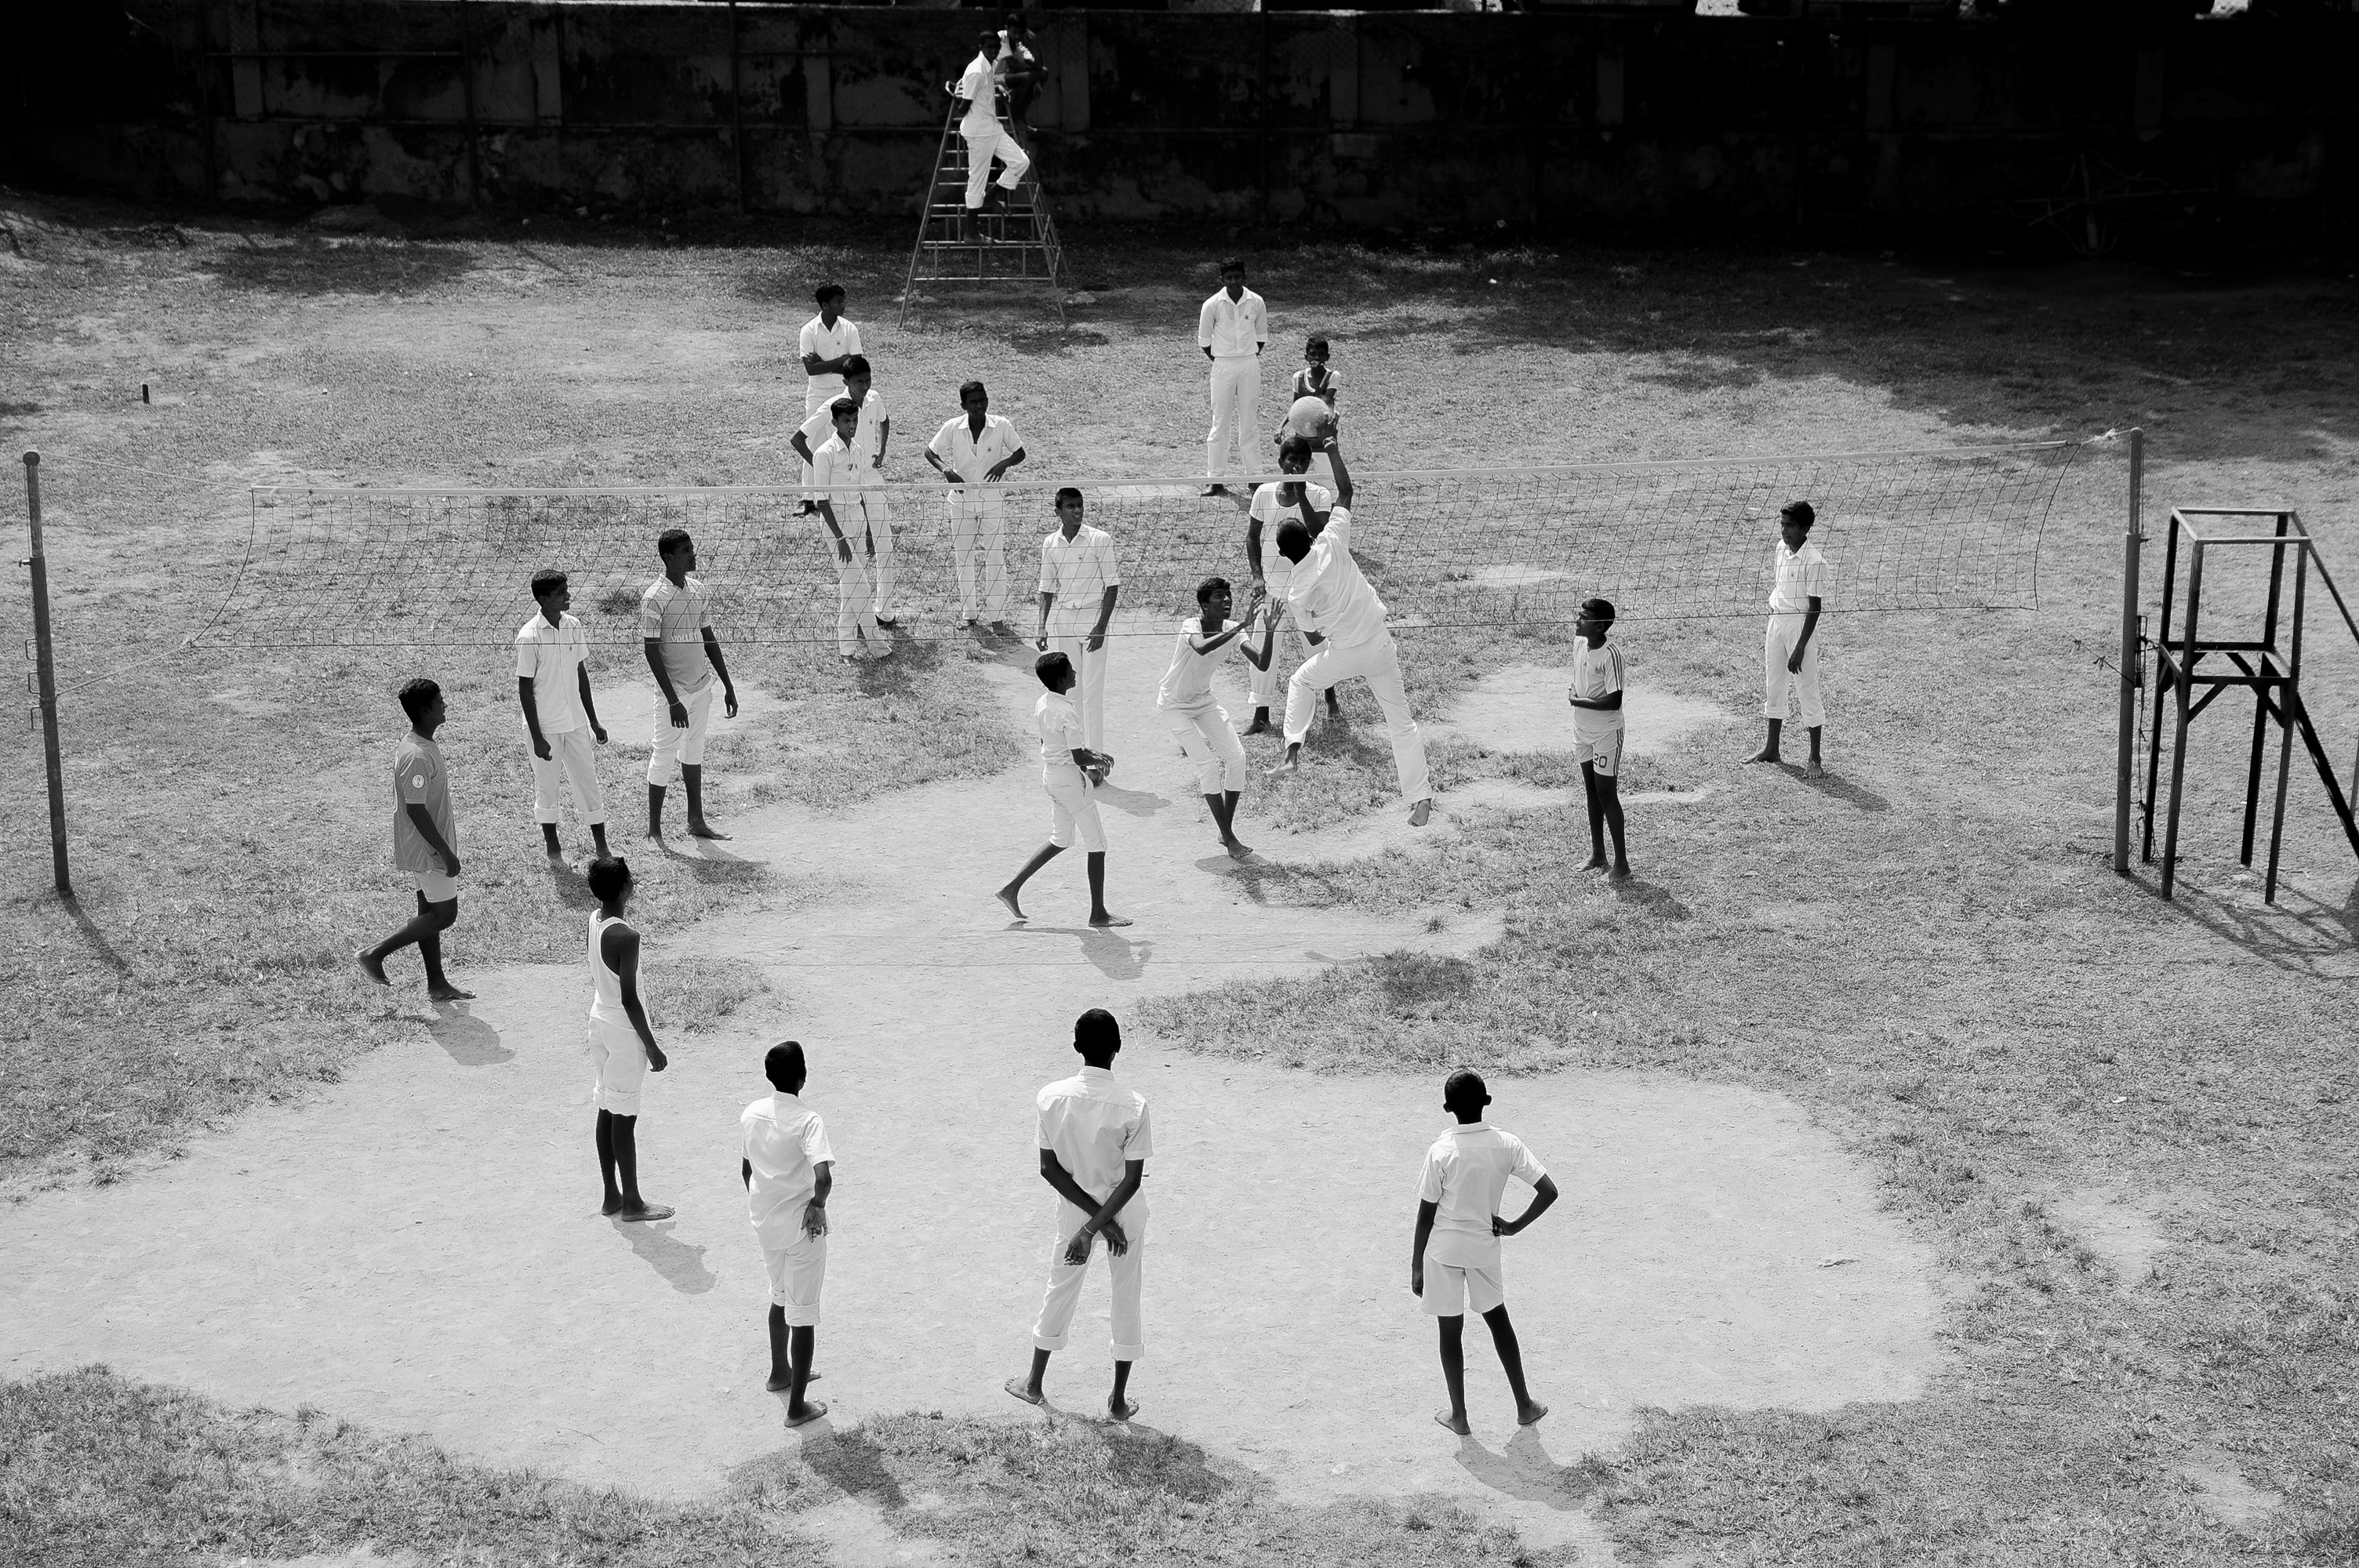 group of people playing baseball